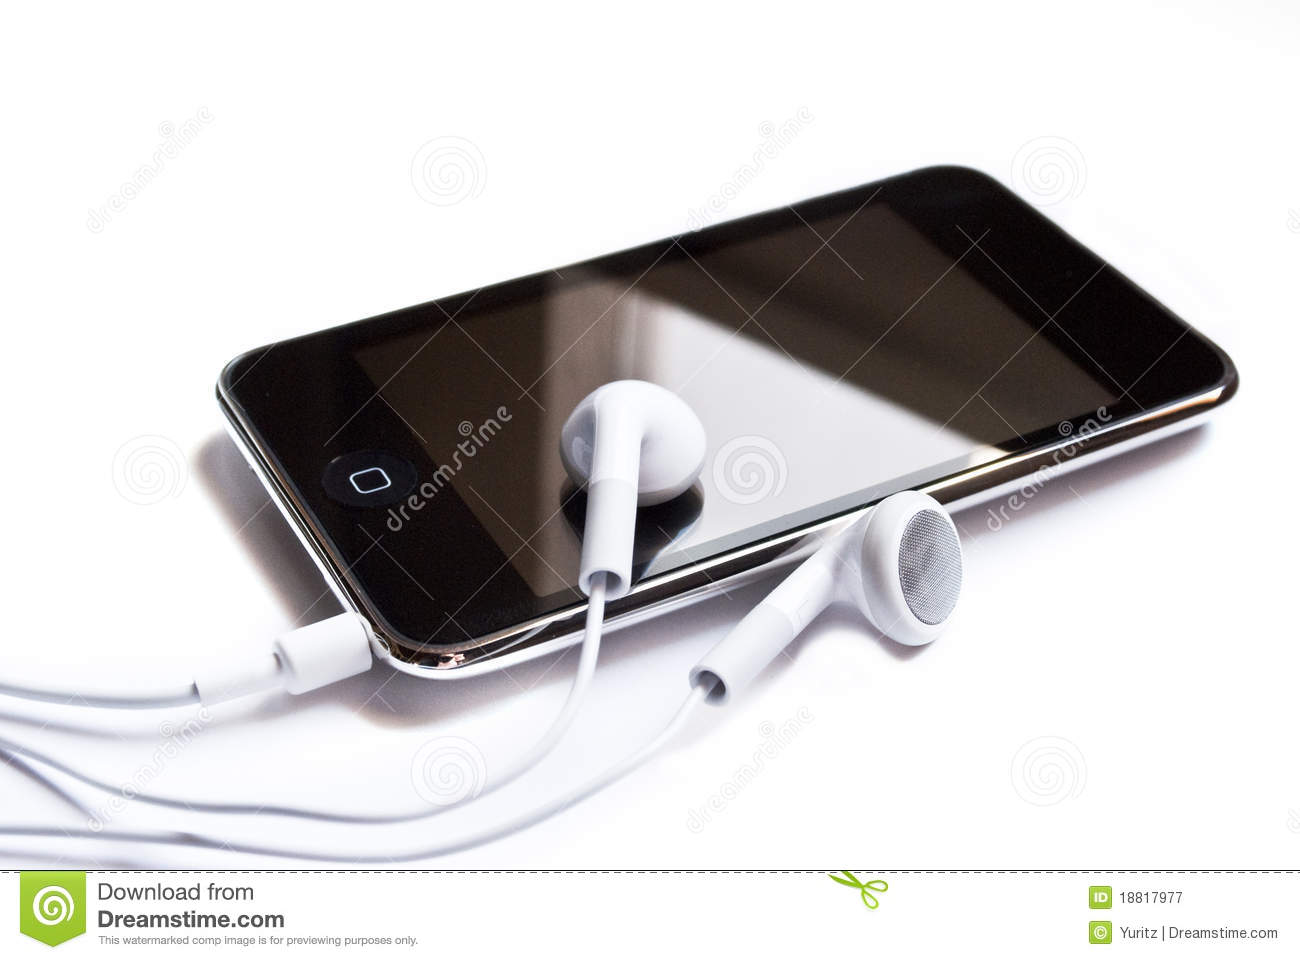 Headphone clipart ipod headphone Clipart Headphones and collection Ipod